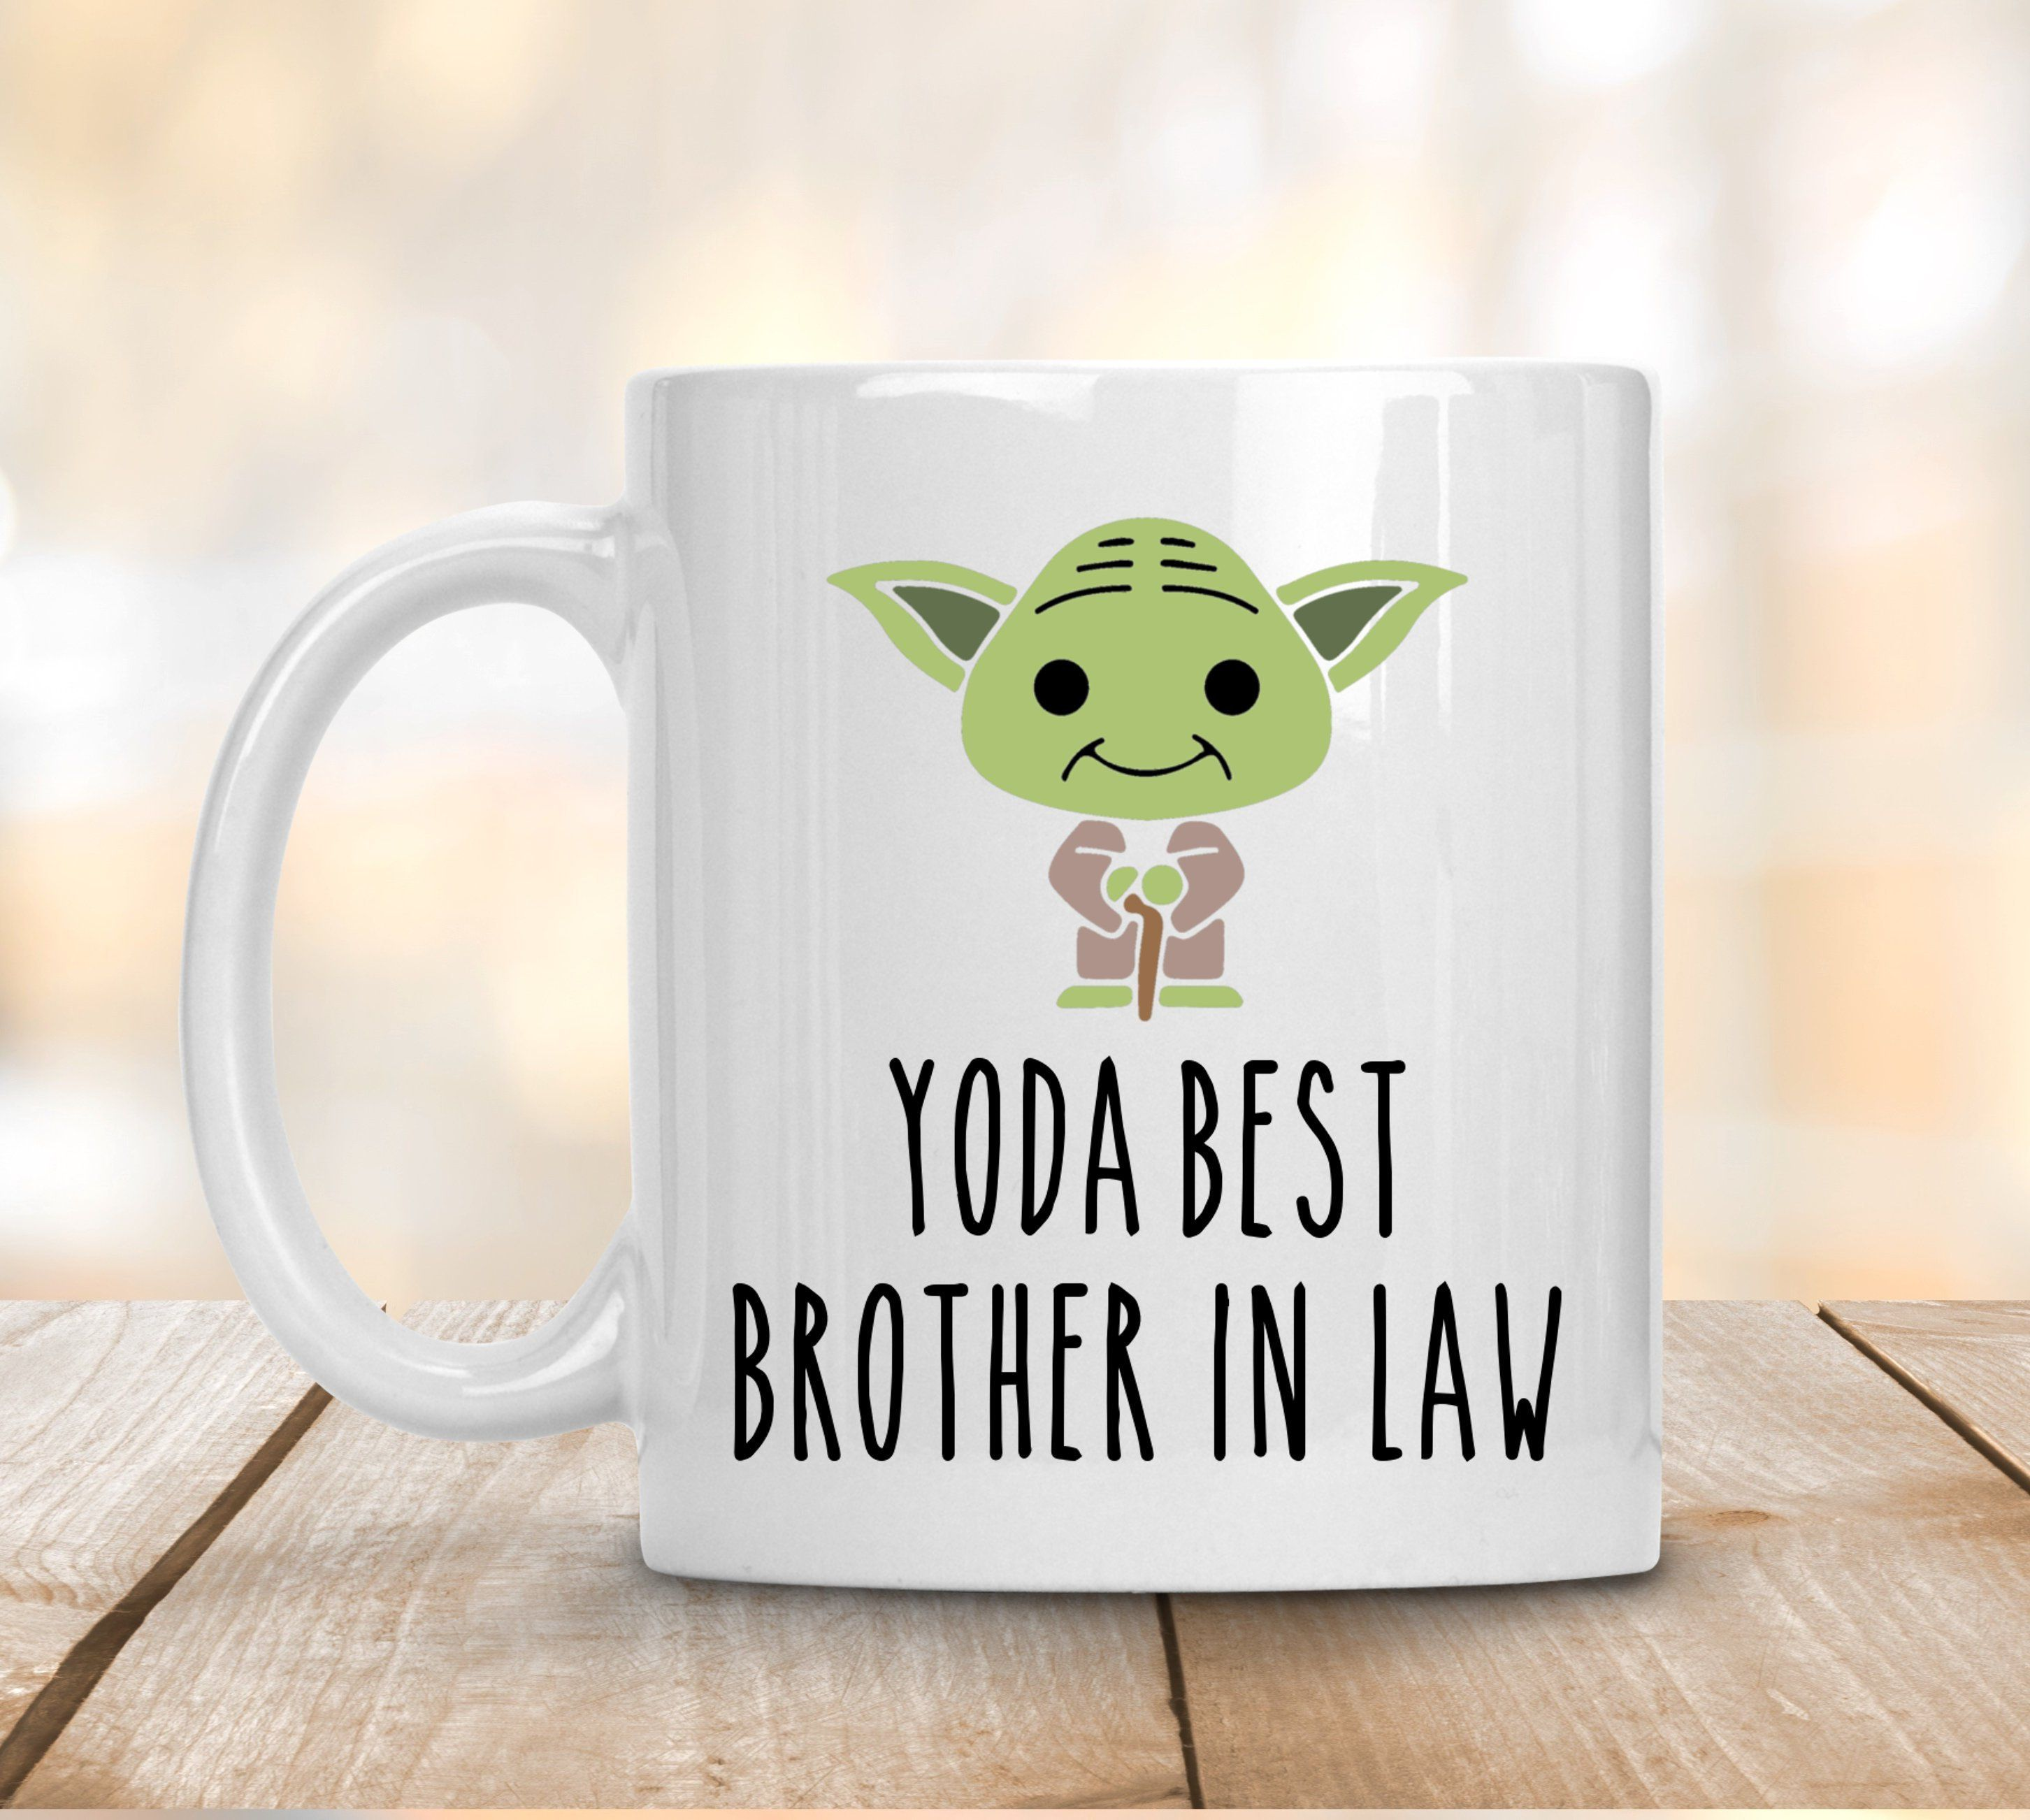 Yo Da Best Brother In Law Coffee Mug, Gift for Brother In